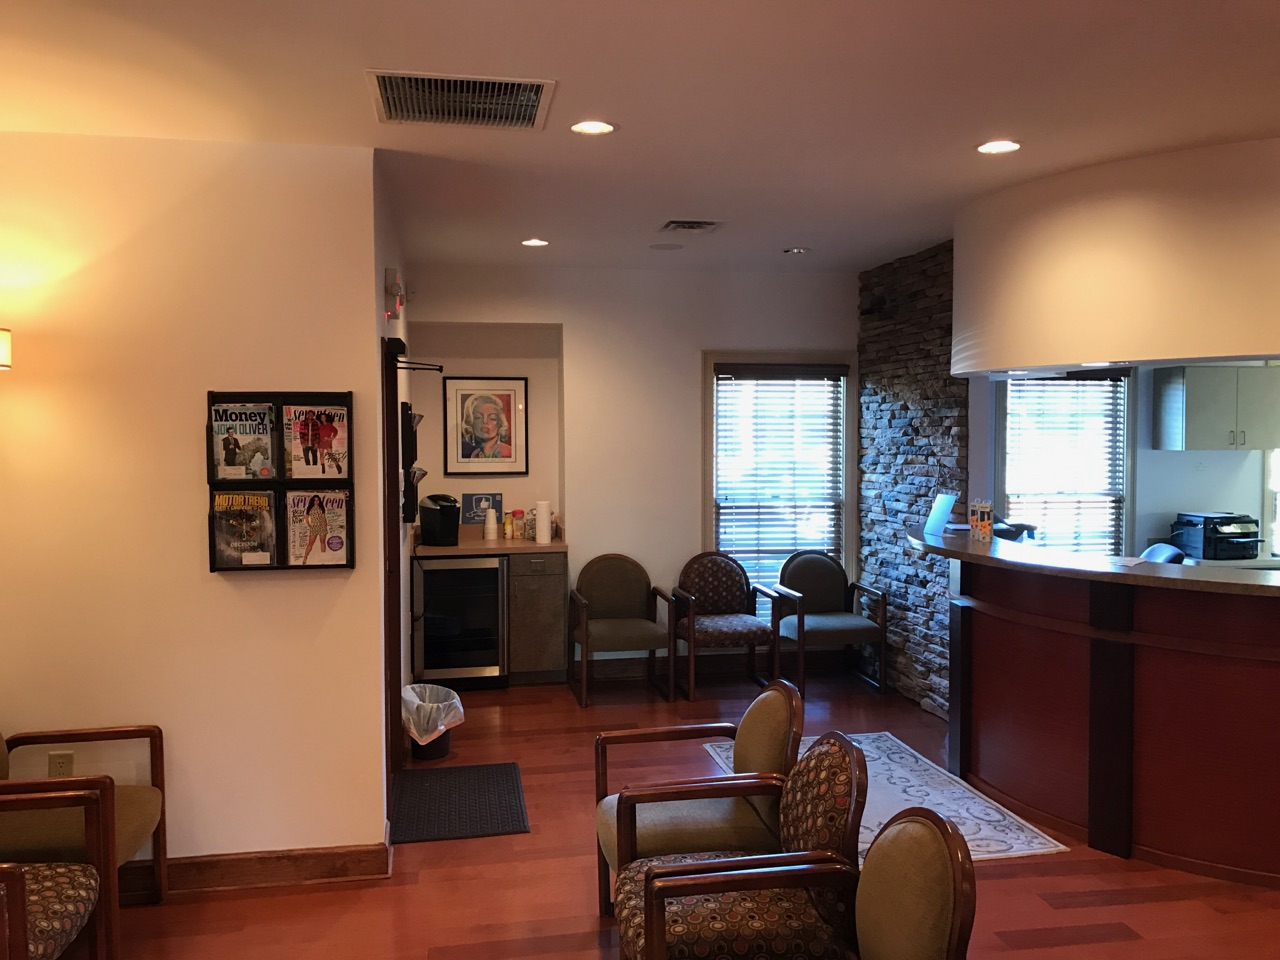 Patient waiting area at Masterpiece Smiles orthodontics office Marietta